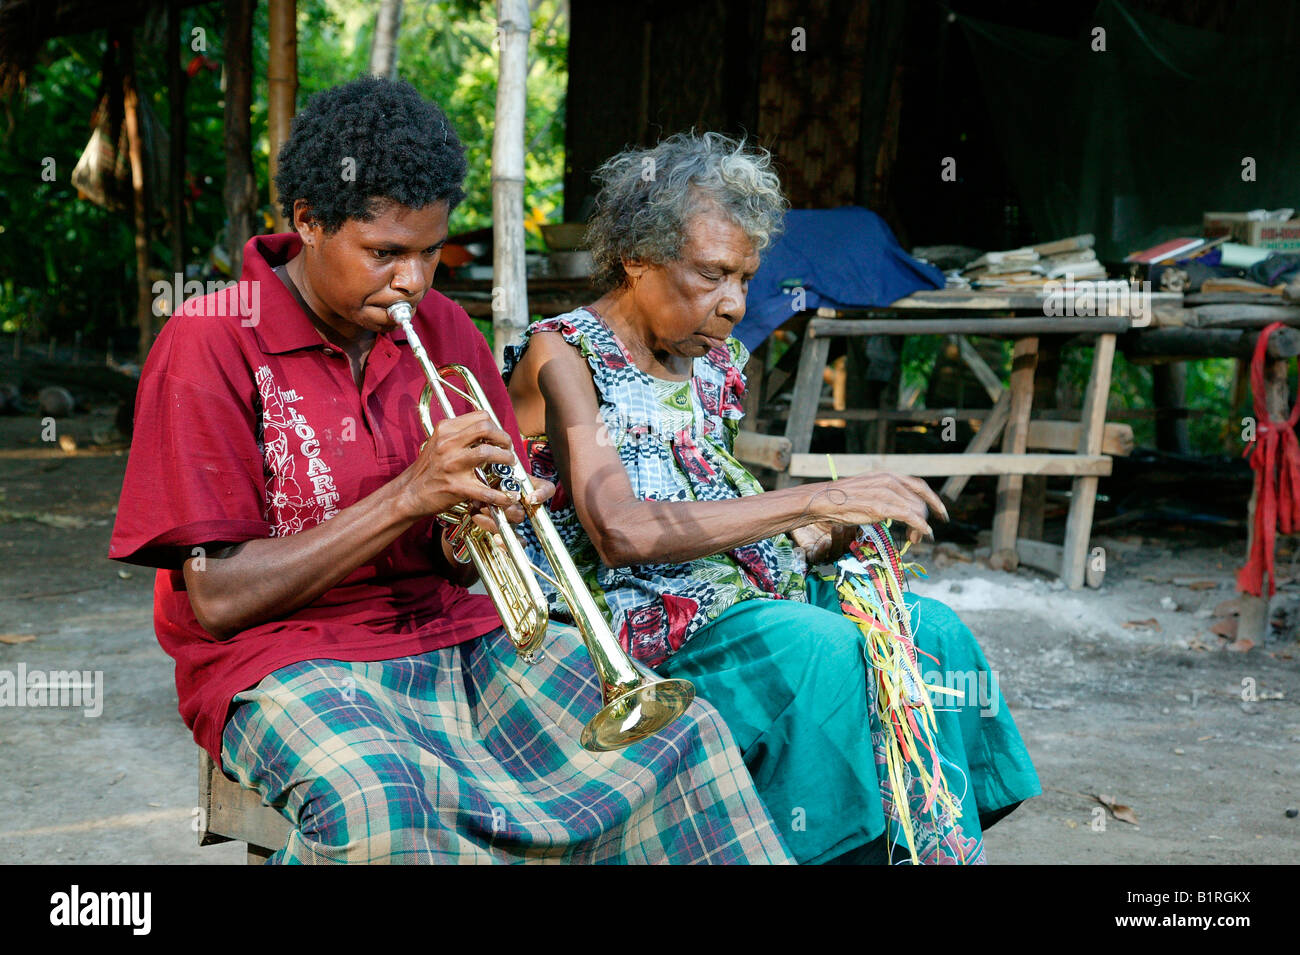 Trombone player sitting next to an old woman, Heldsbach, Papua New Guinea, Melanesia - Stock Image